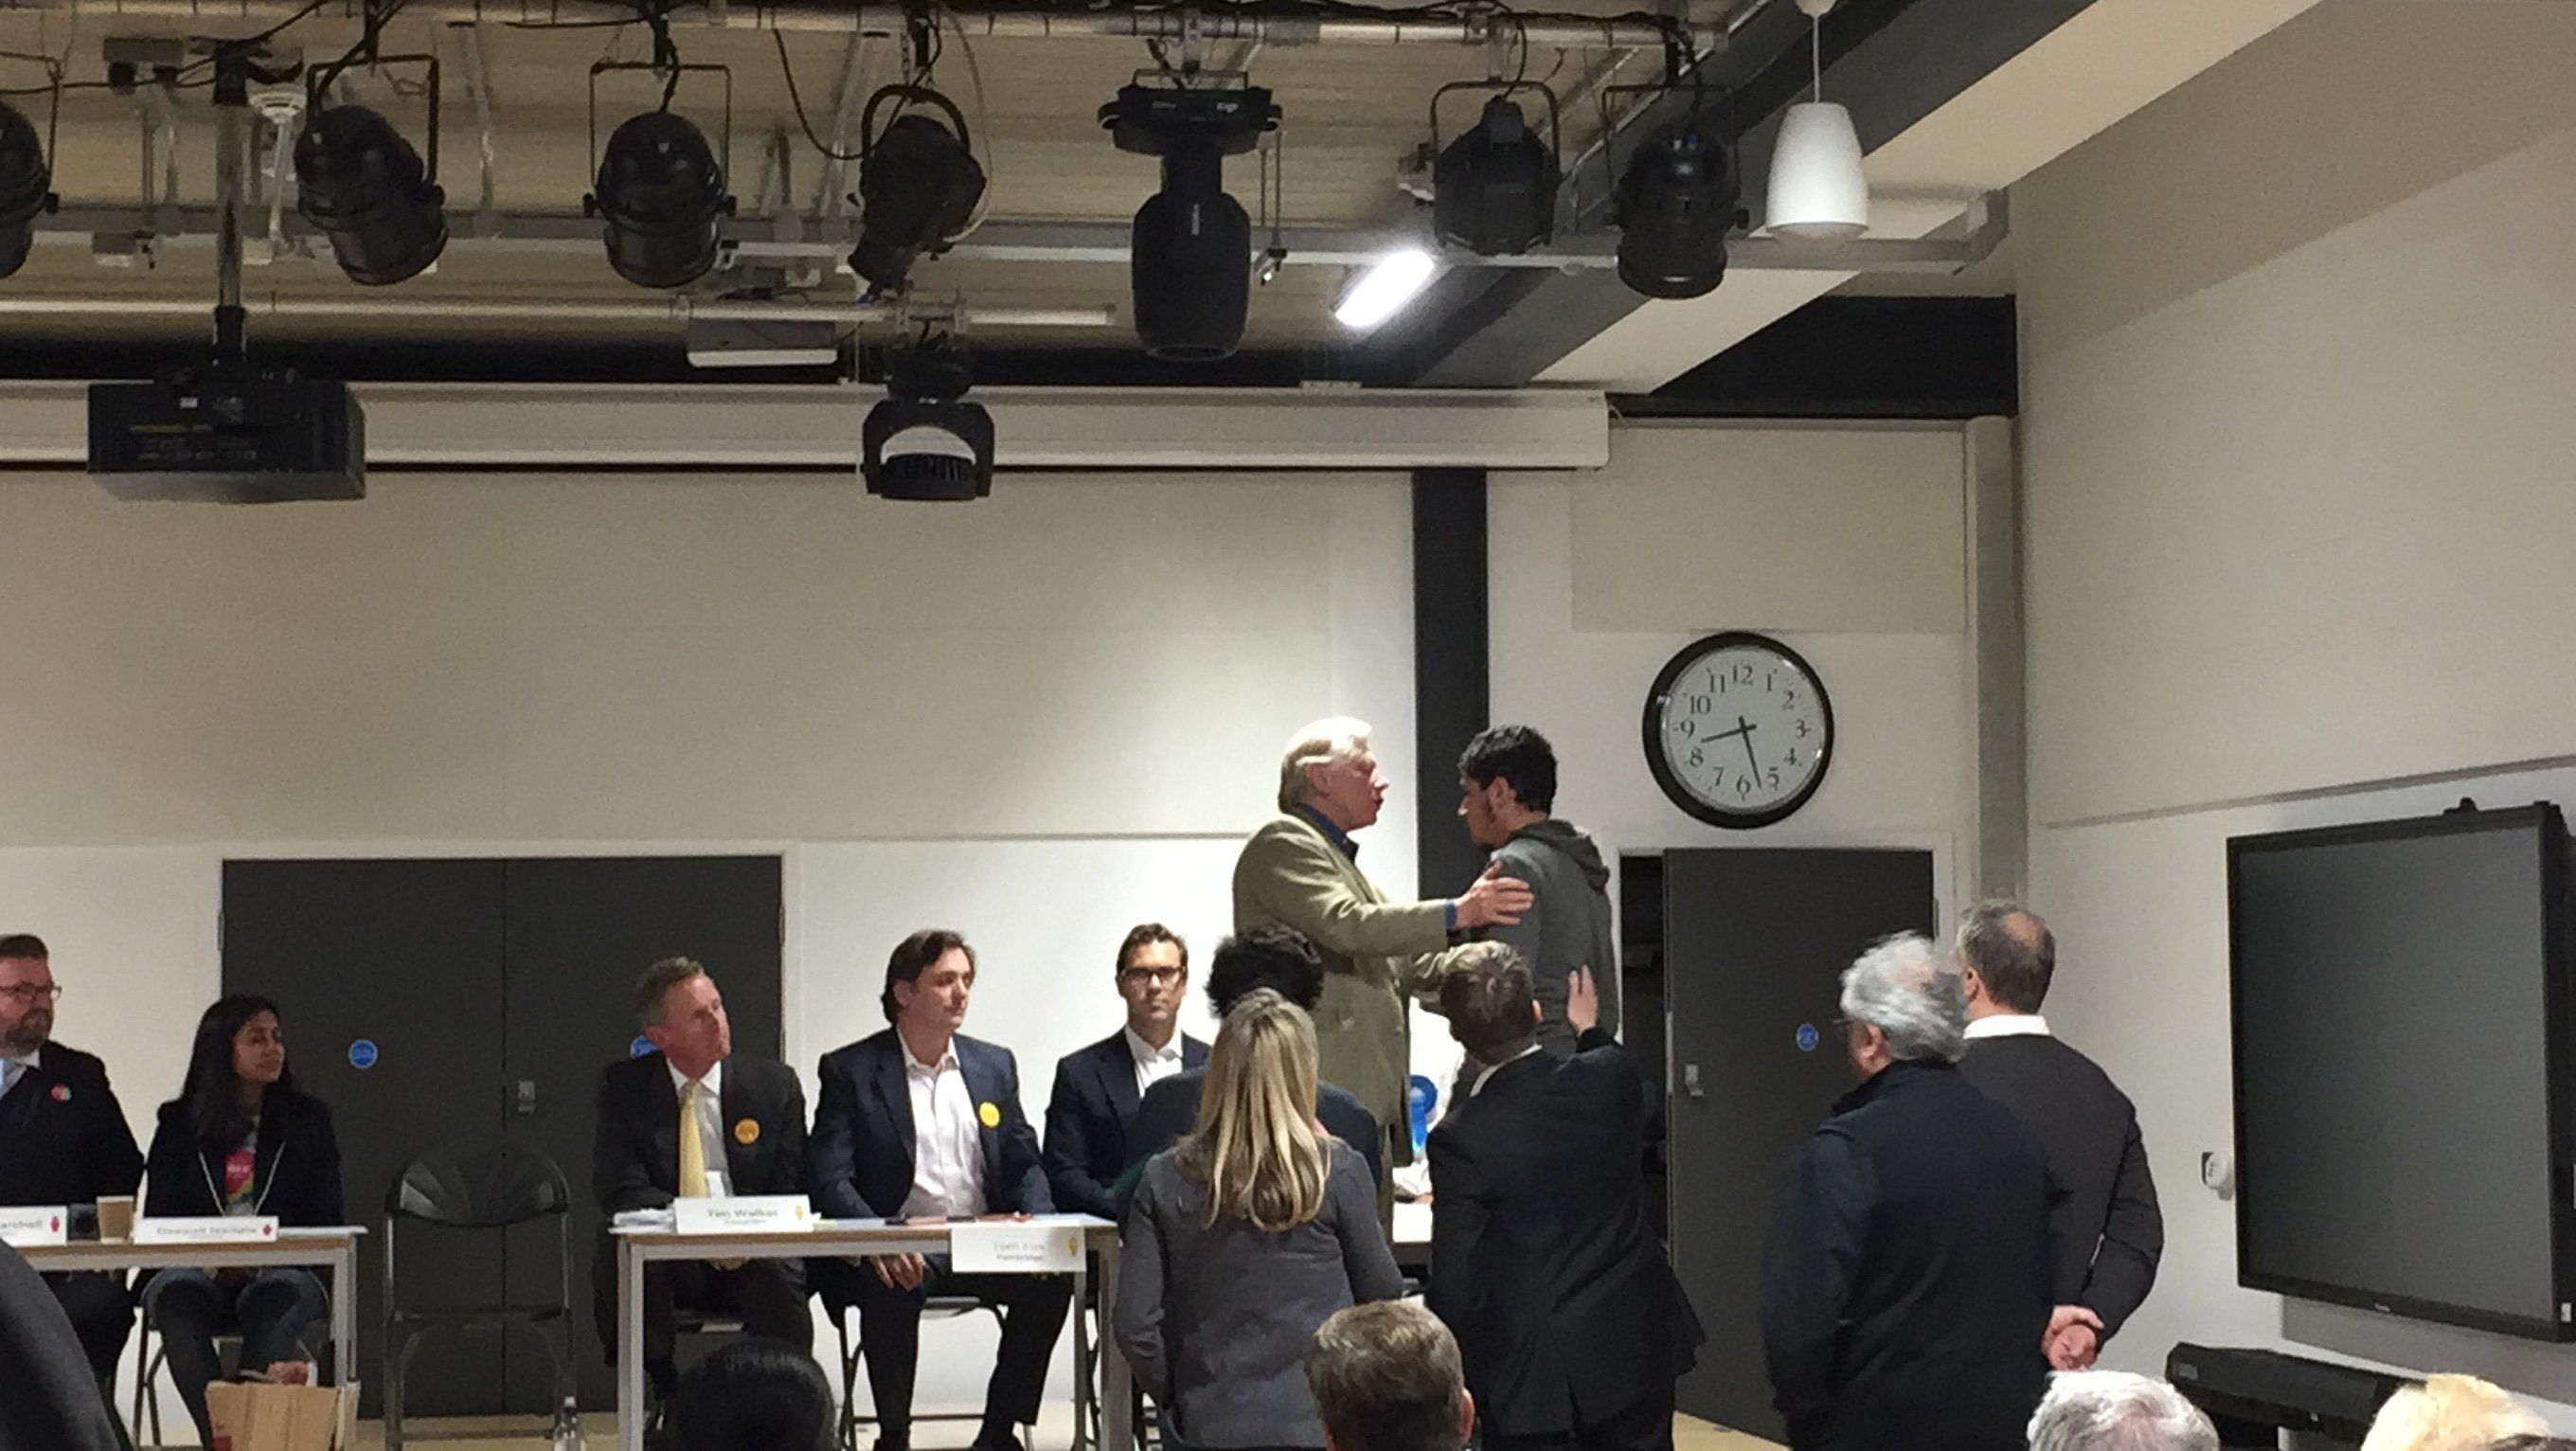 Grenfell Council Hustings Disrupted After Relative Of Victims Storms Stage To Confront Tory Candidates